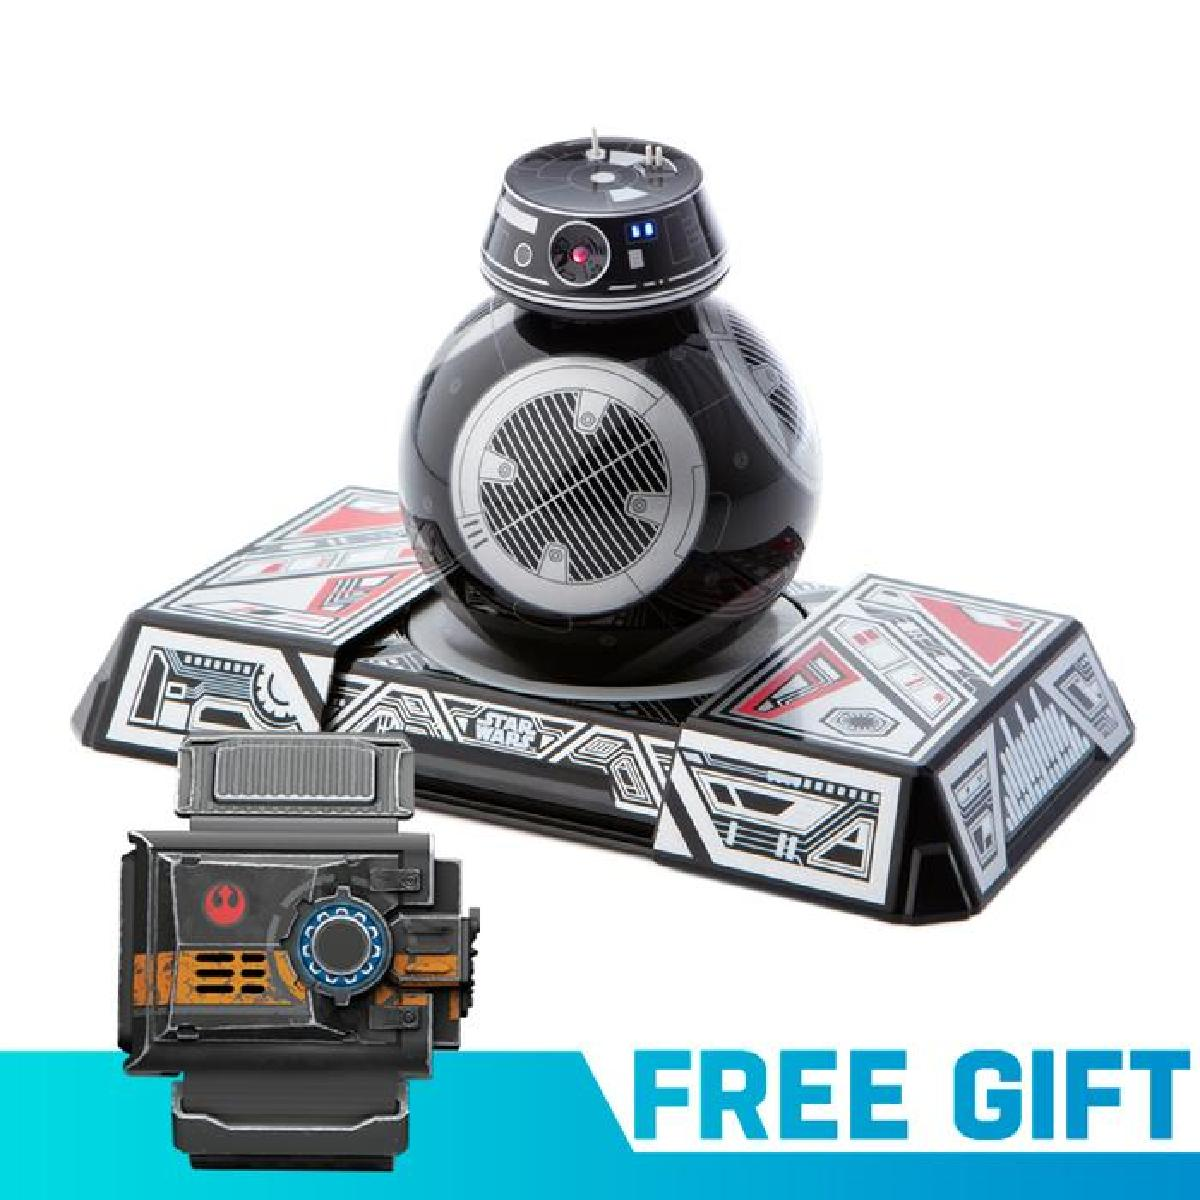 Sphero Bb8 Droid Trainer Star Wars Special Edition Bundle By App Enabled E With 1200x1200